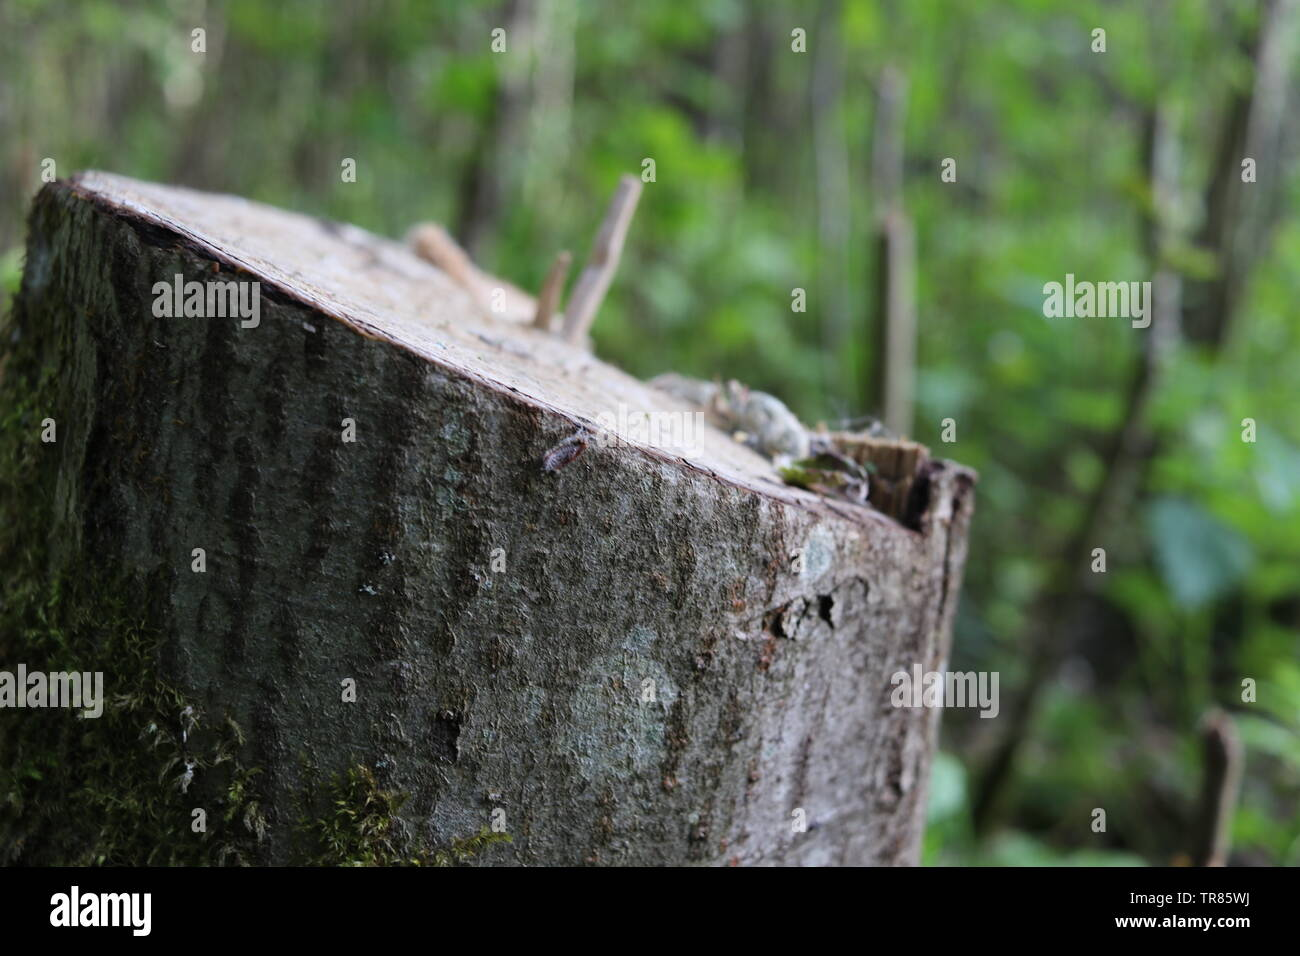 A cut down tree trunk inclines towards the light. - Stock Image